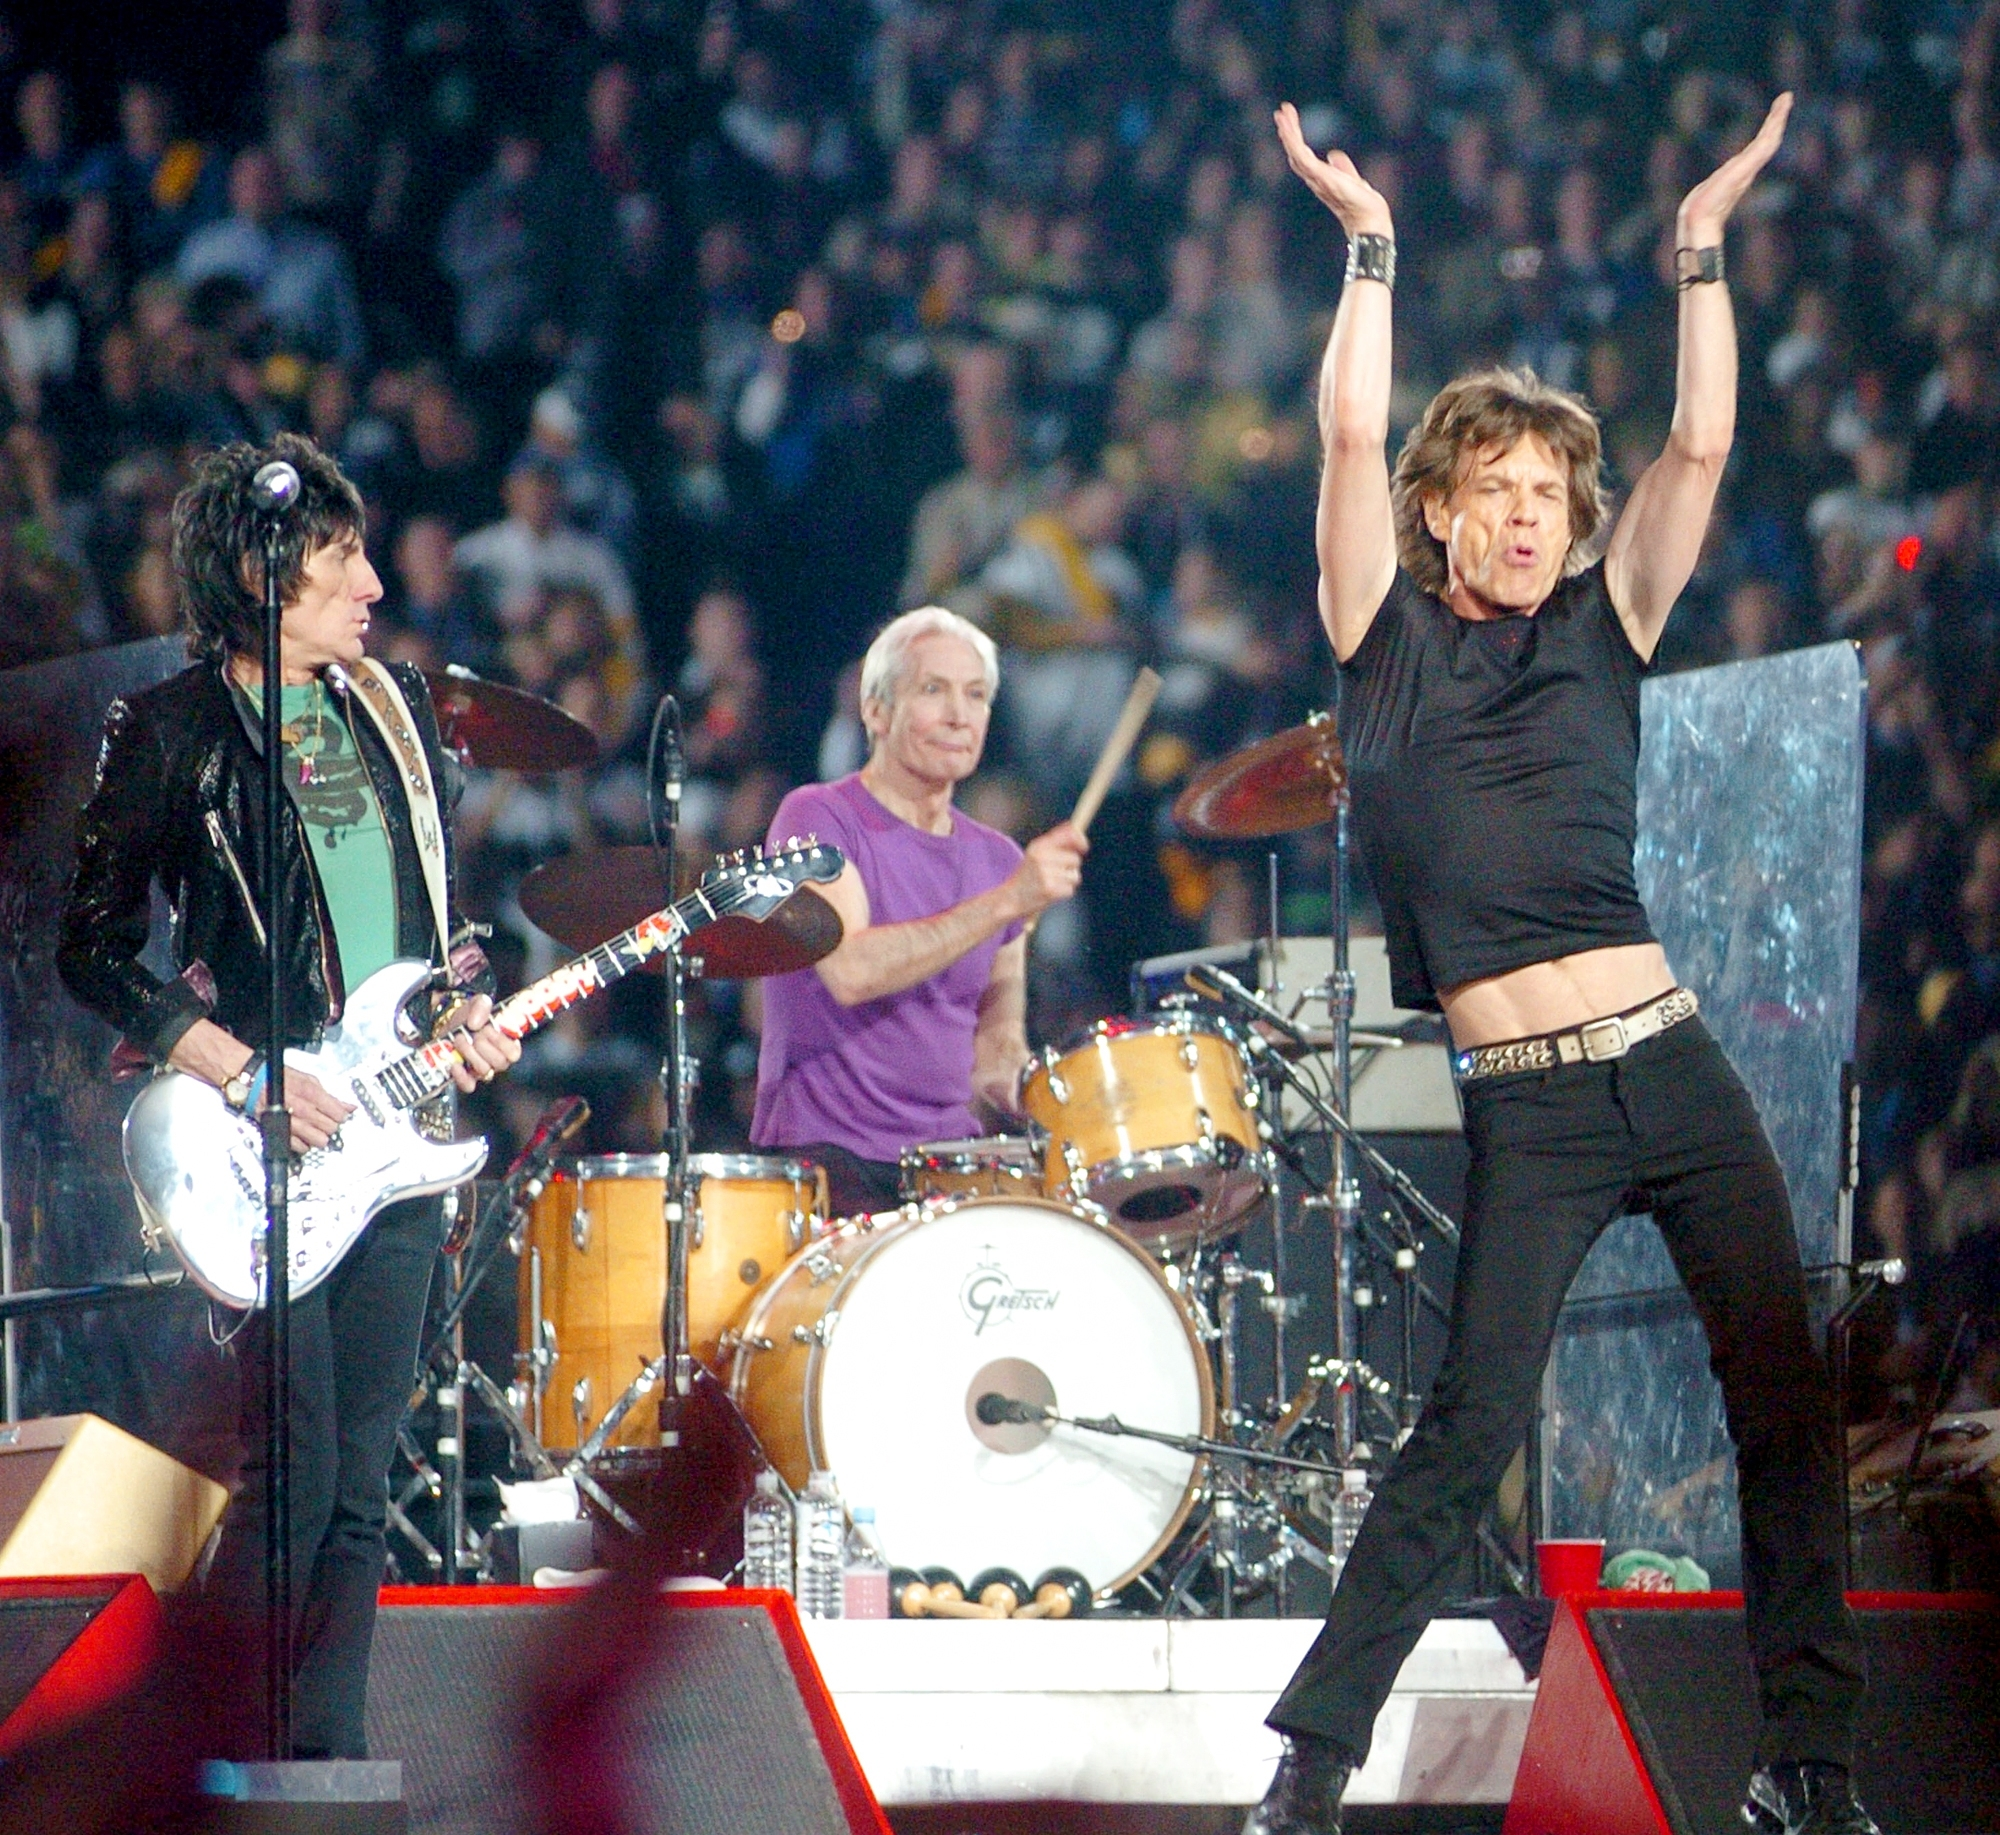 Super Bowl Halftime Performers Through The Years: Beyonce with regard to Rolling Stones Super Bowl